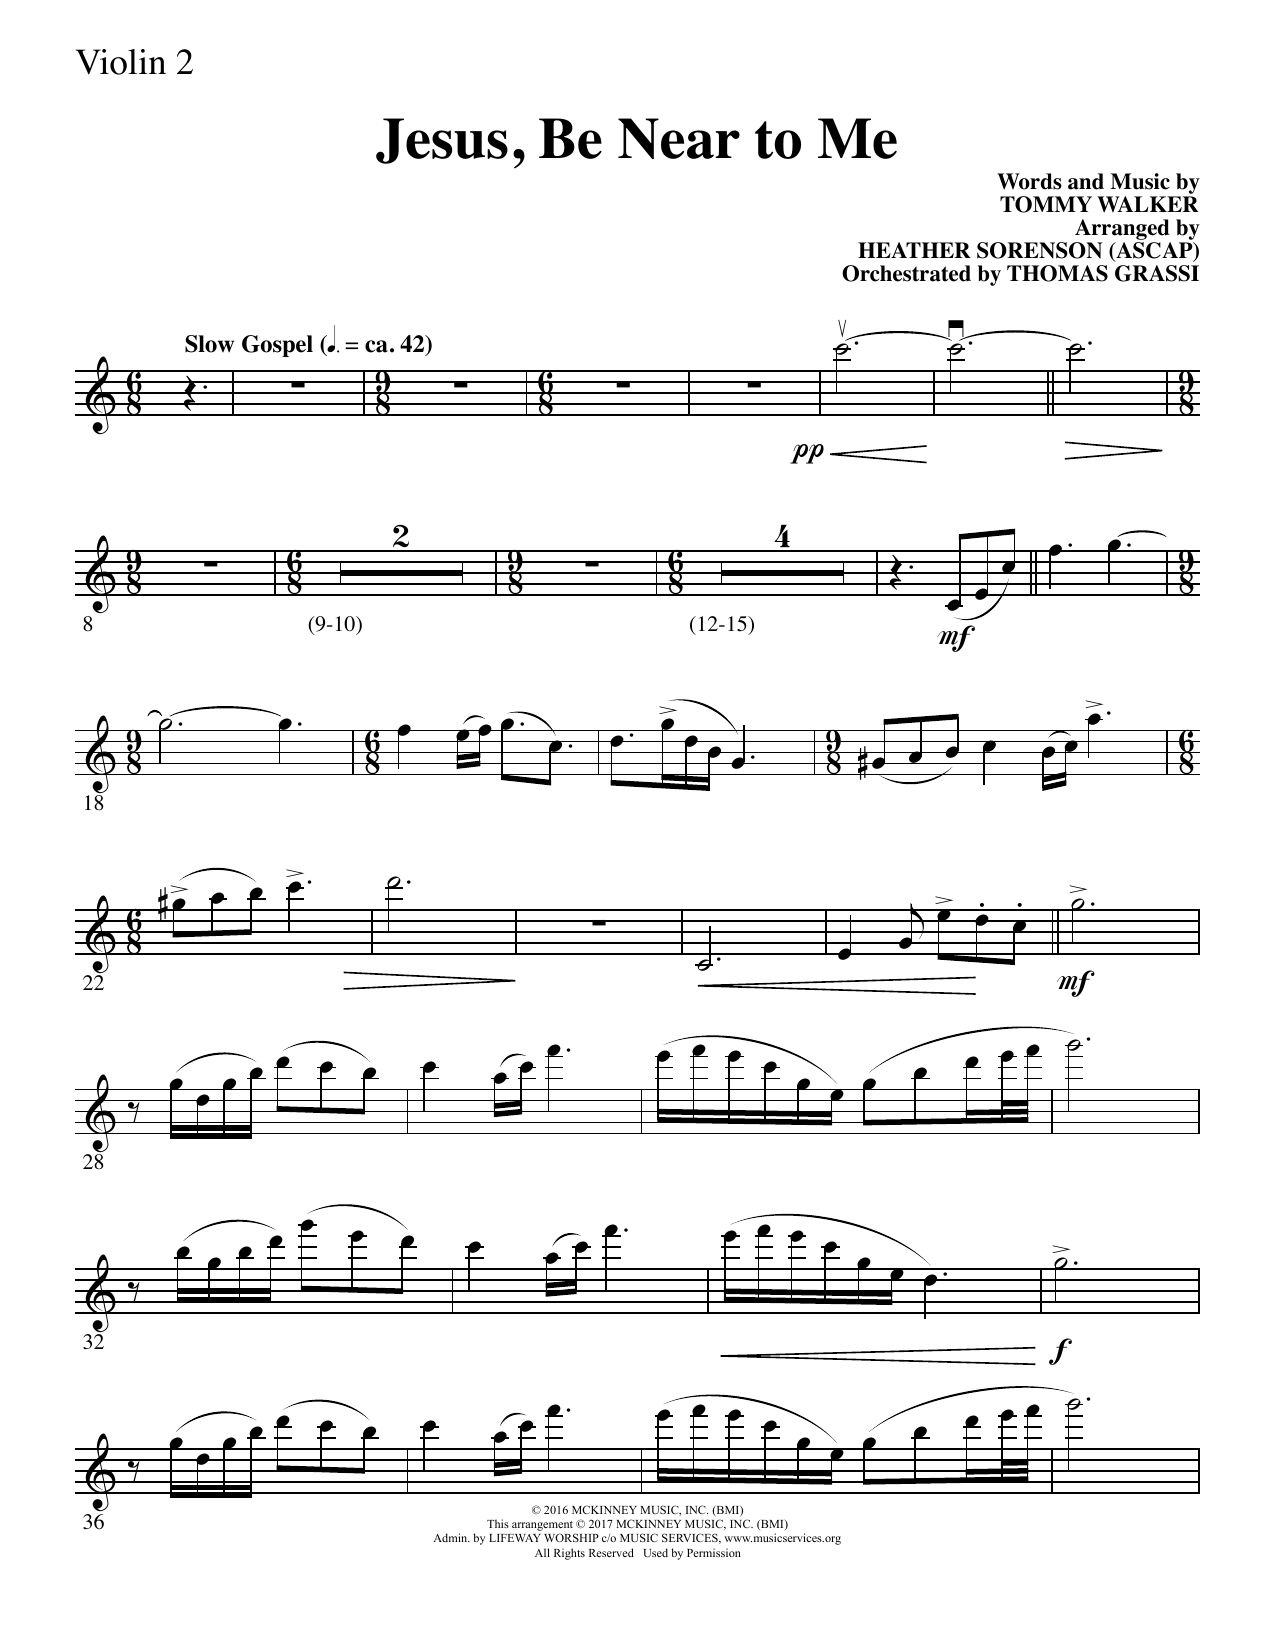 Heather Sorenson Jesus, Be Near to Me - Violin 2 sheet music notes and chords. Download Printable PDF.